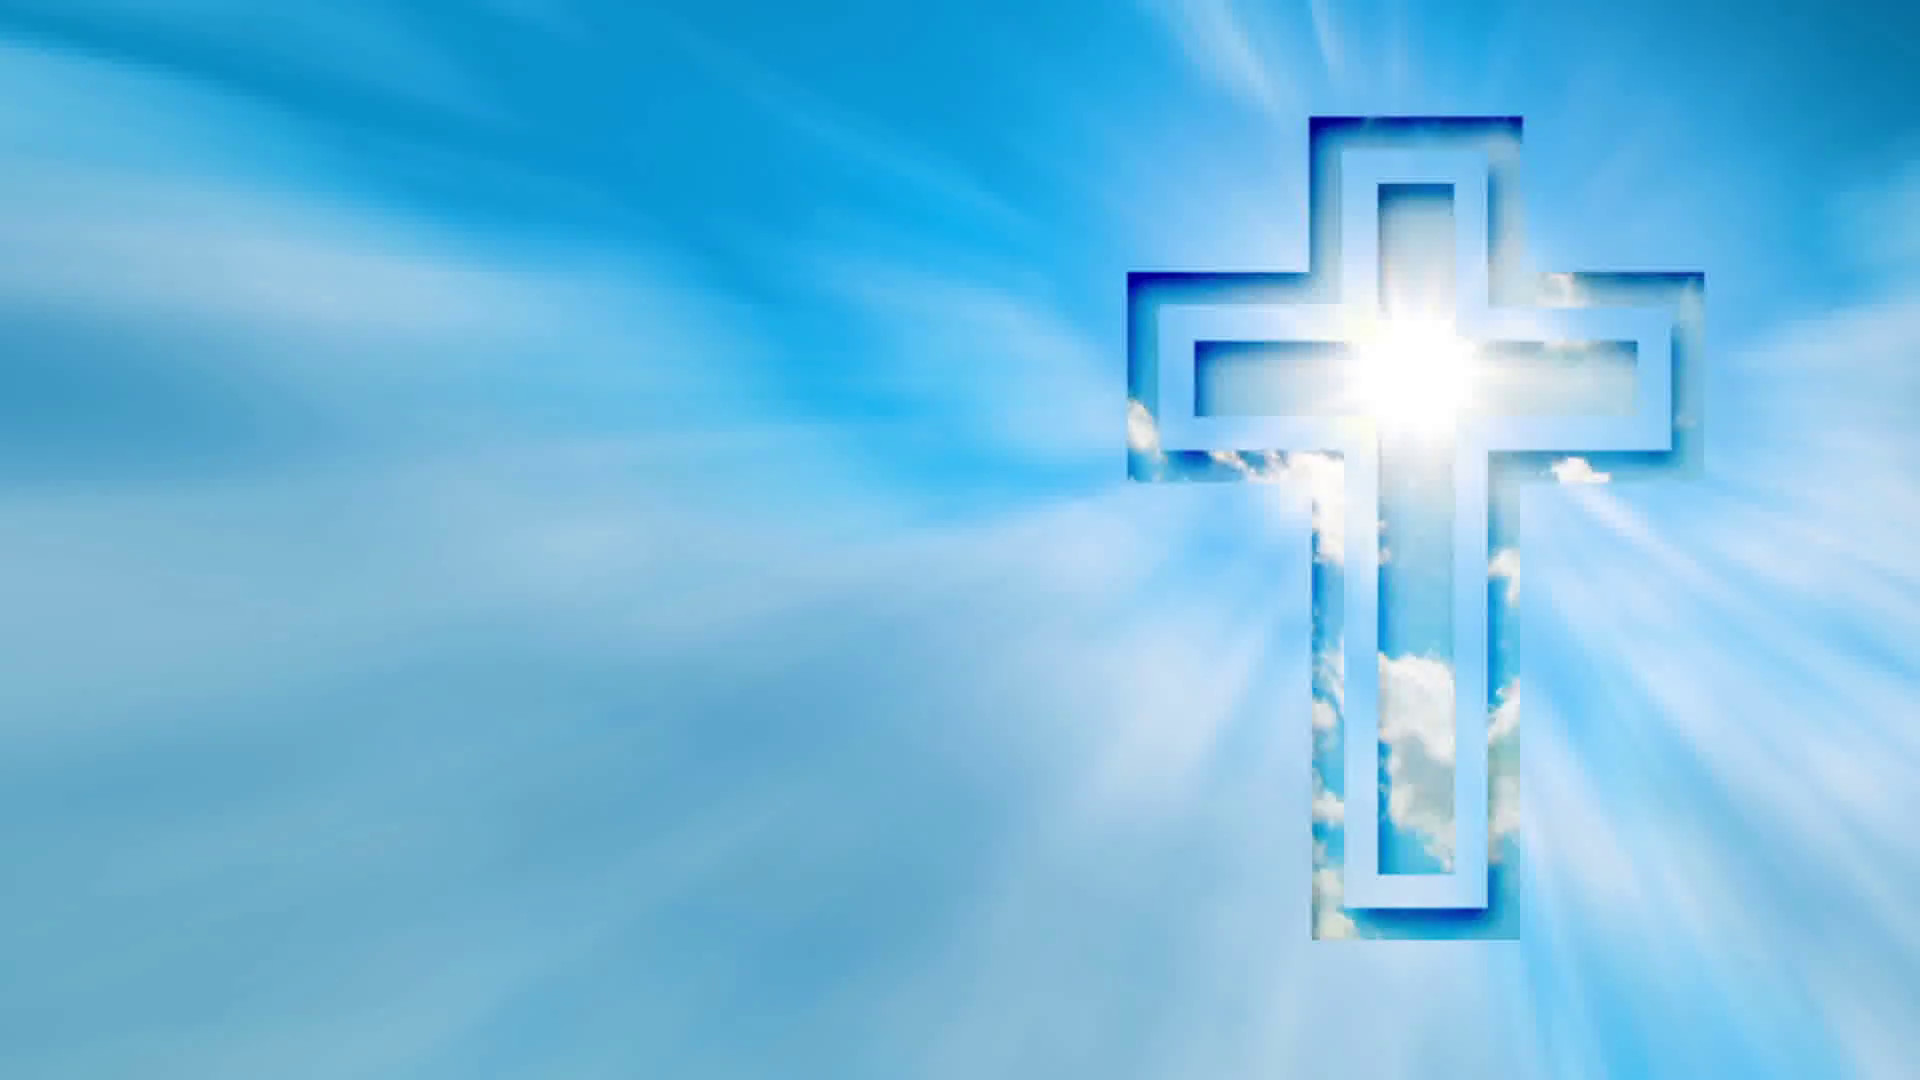 religious cross background backgrounds videoblocks motion christ church wallpapertag jooinn